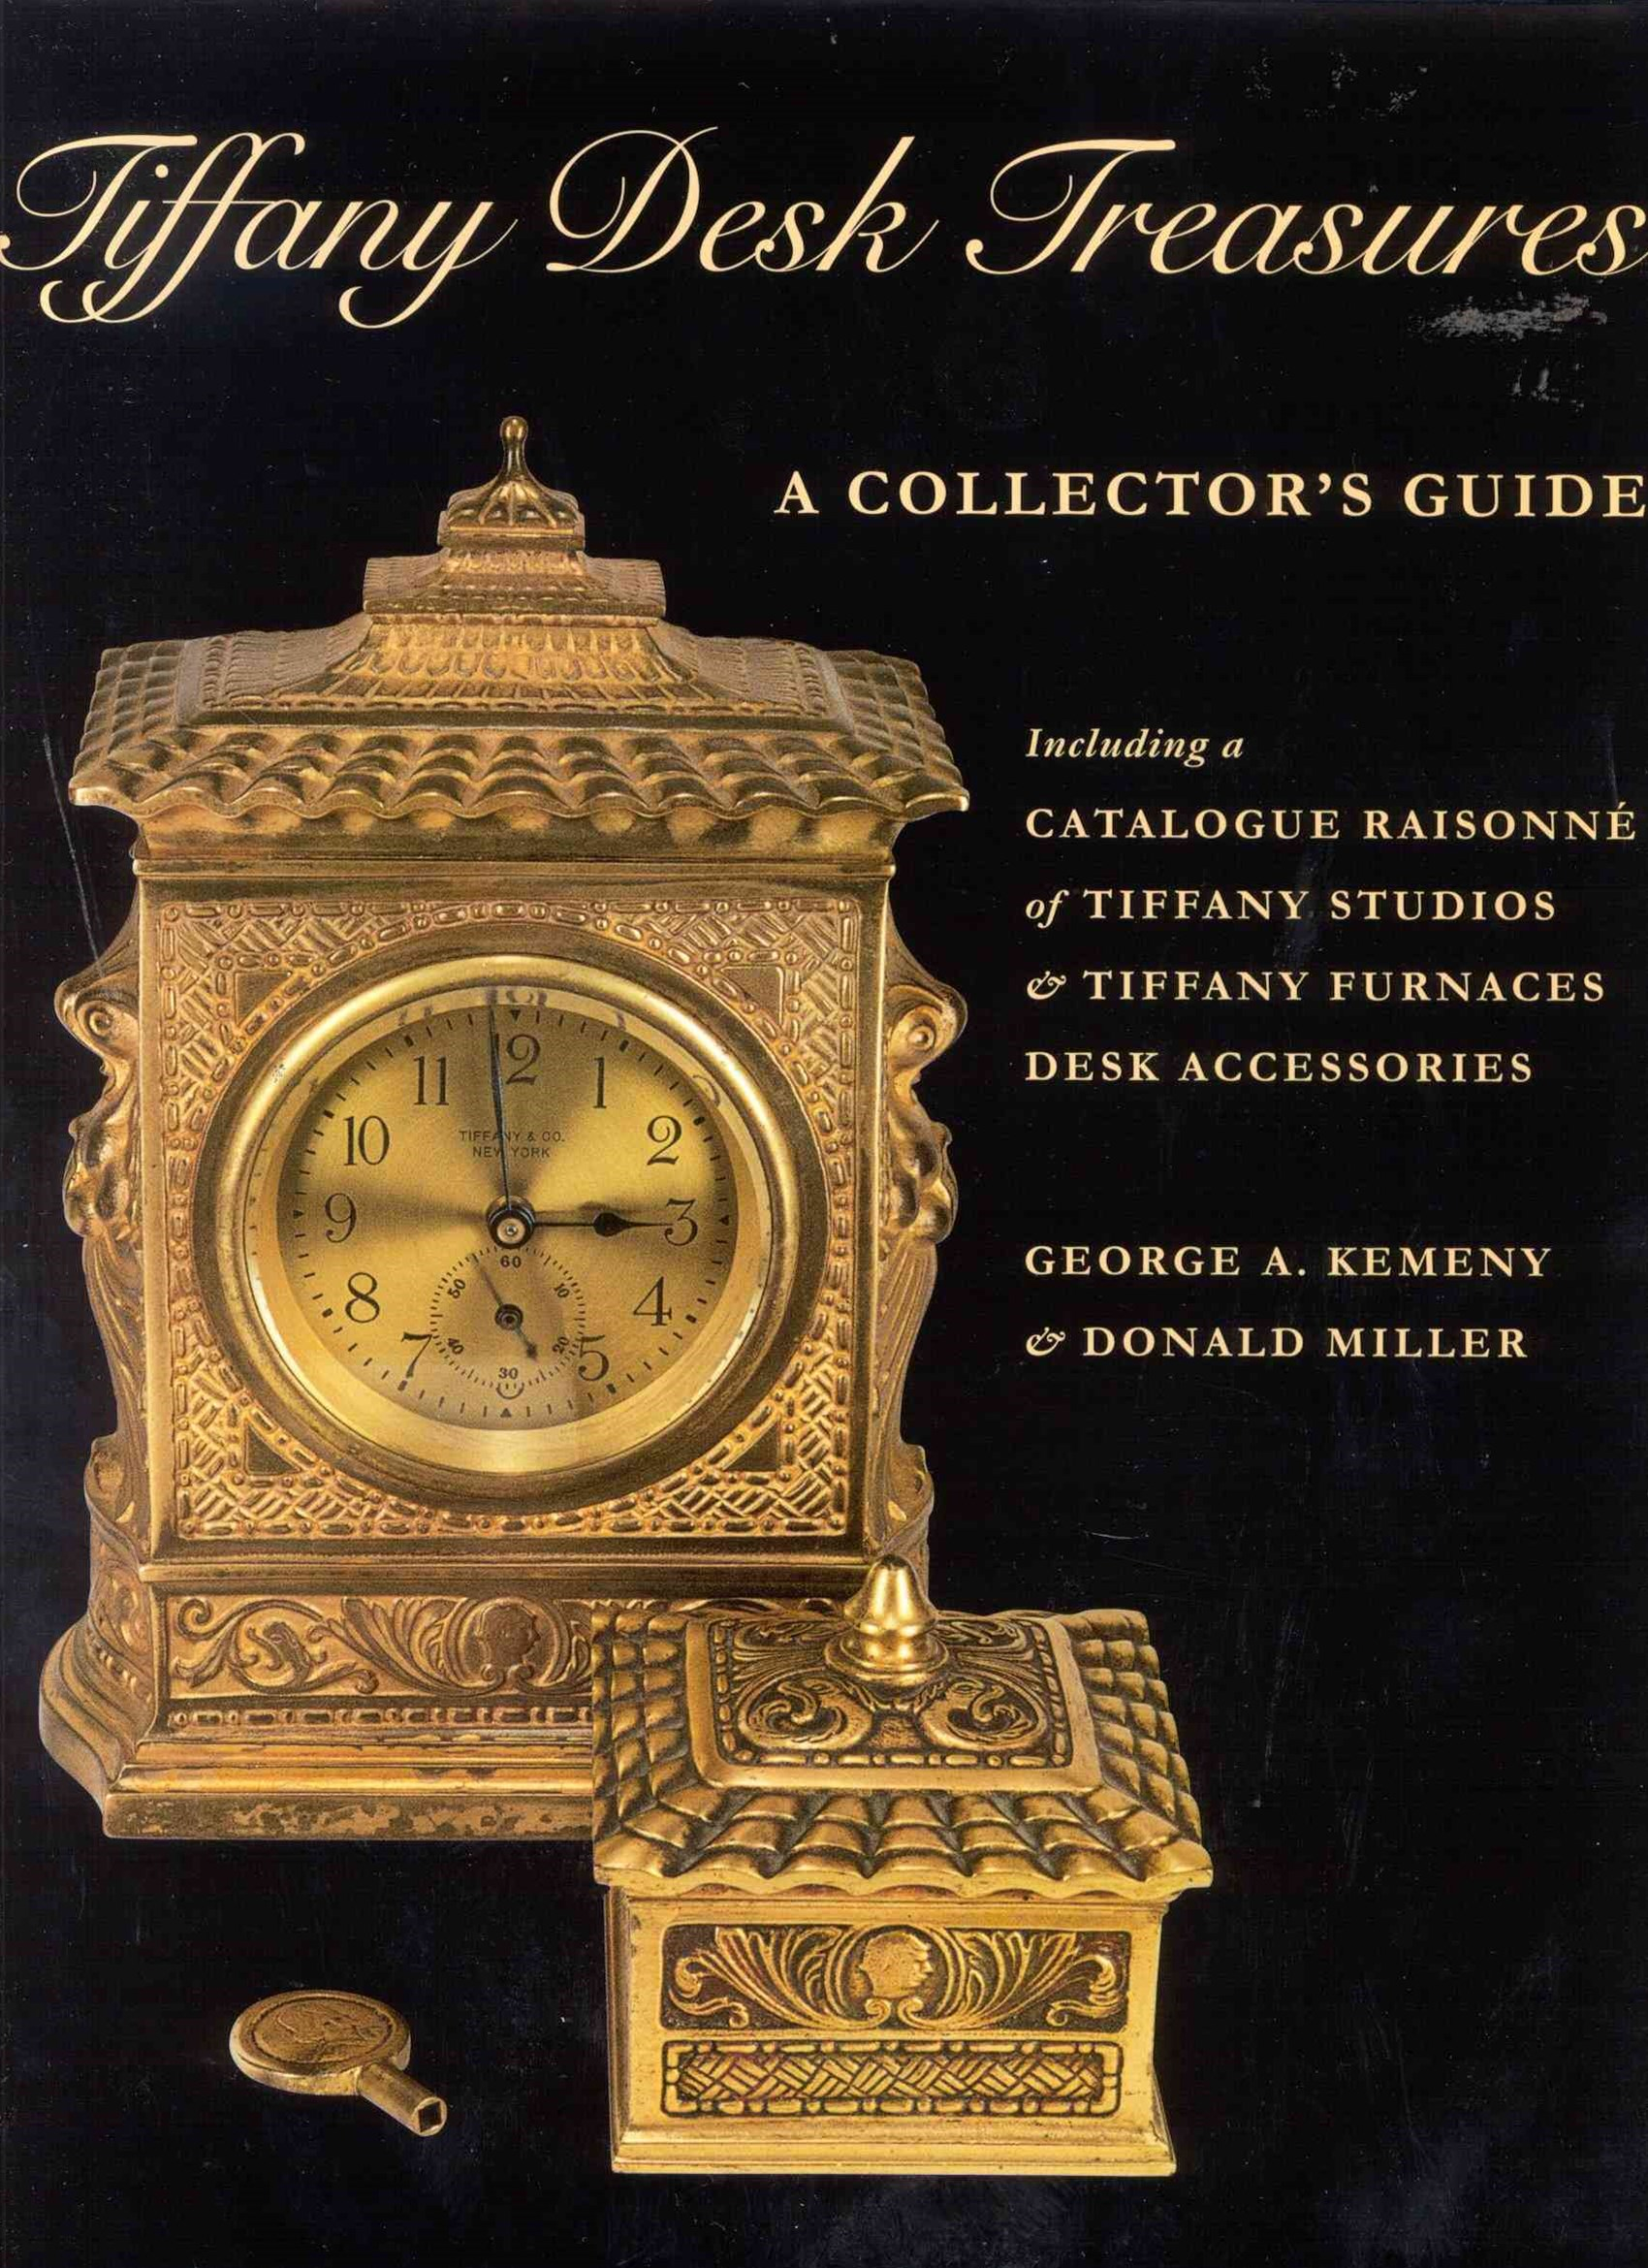 Tiffany Desk Treasures: Collector's Guide